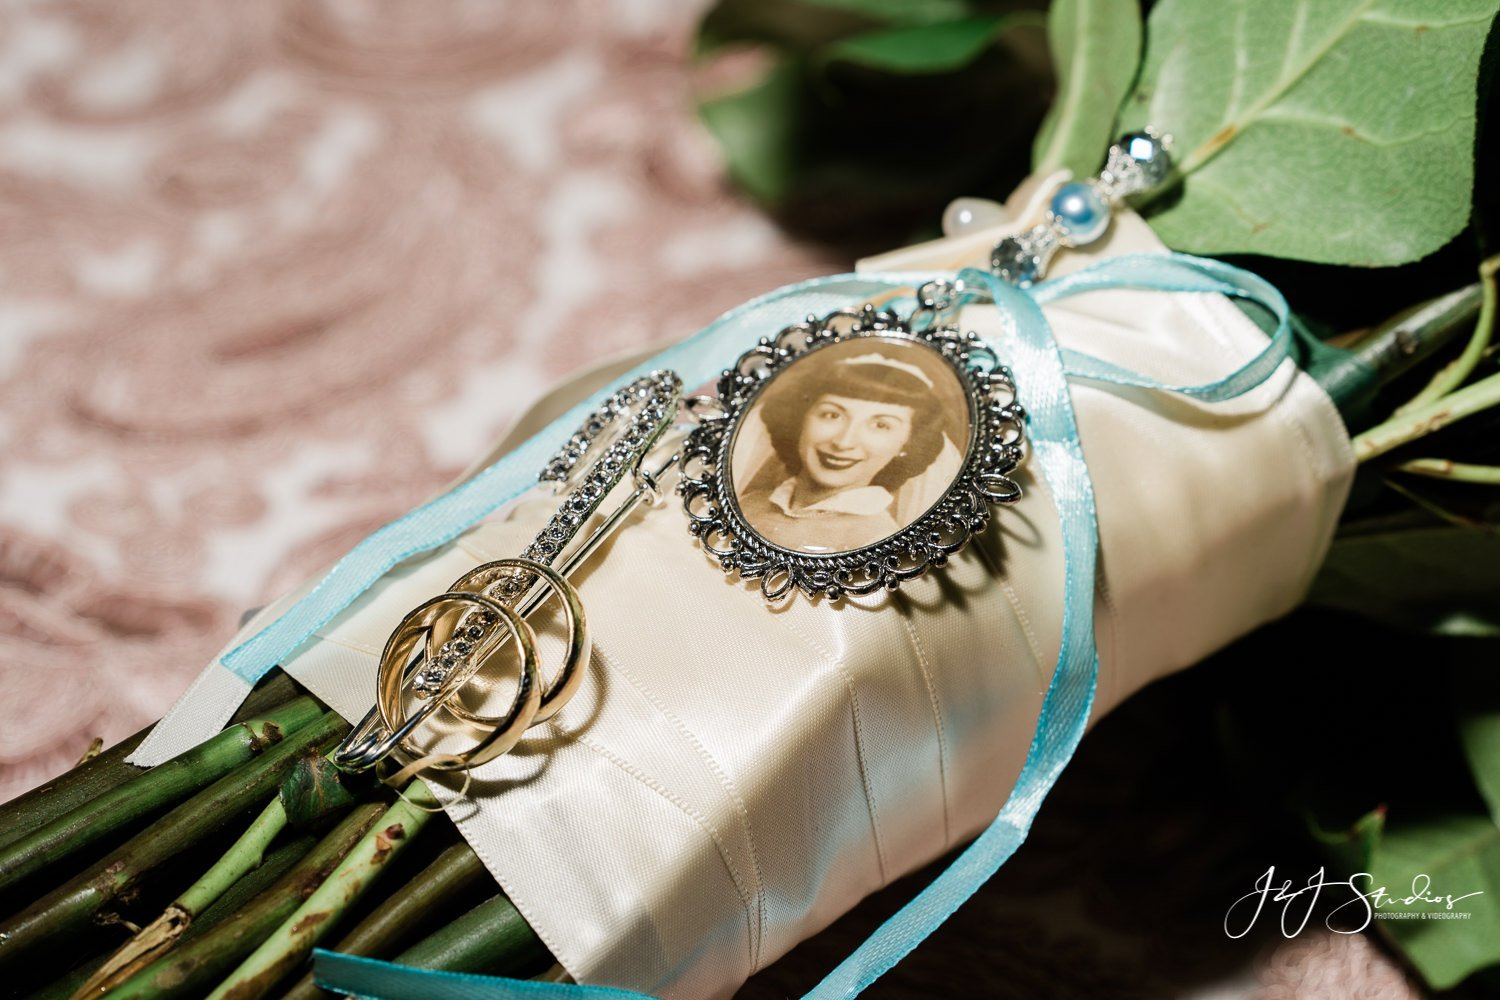 charms and rings on wedding bouquet freedom elite yacht charter wedding